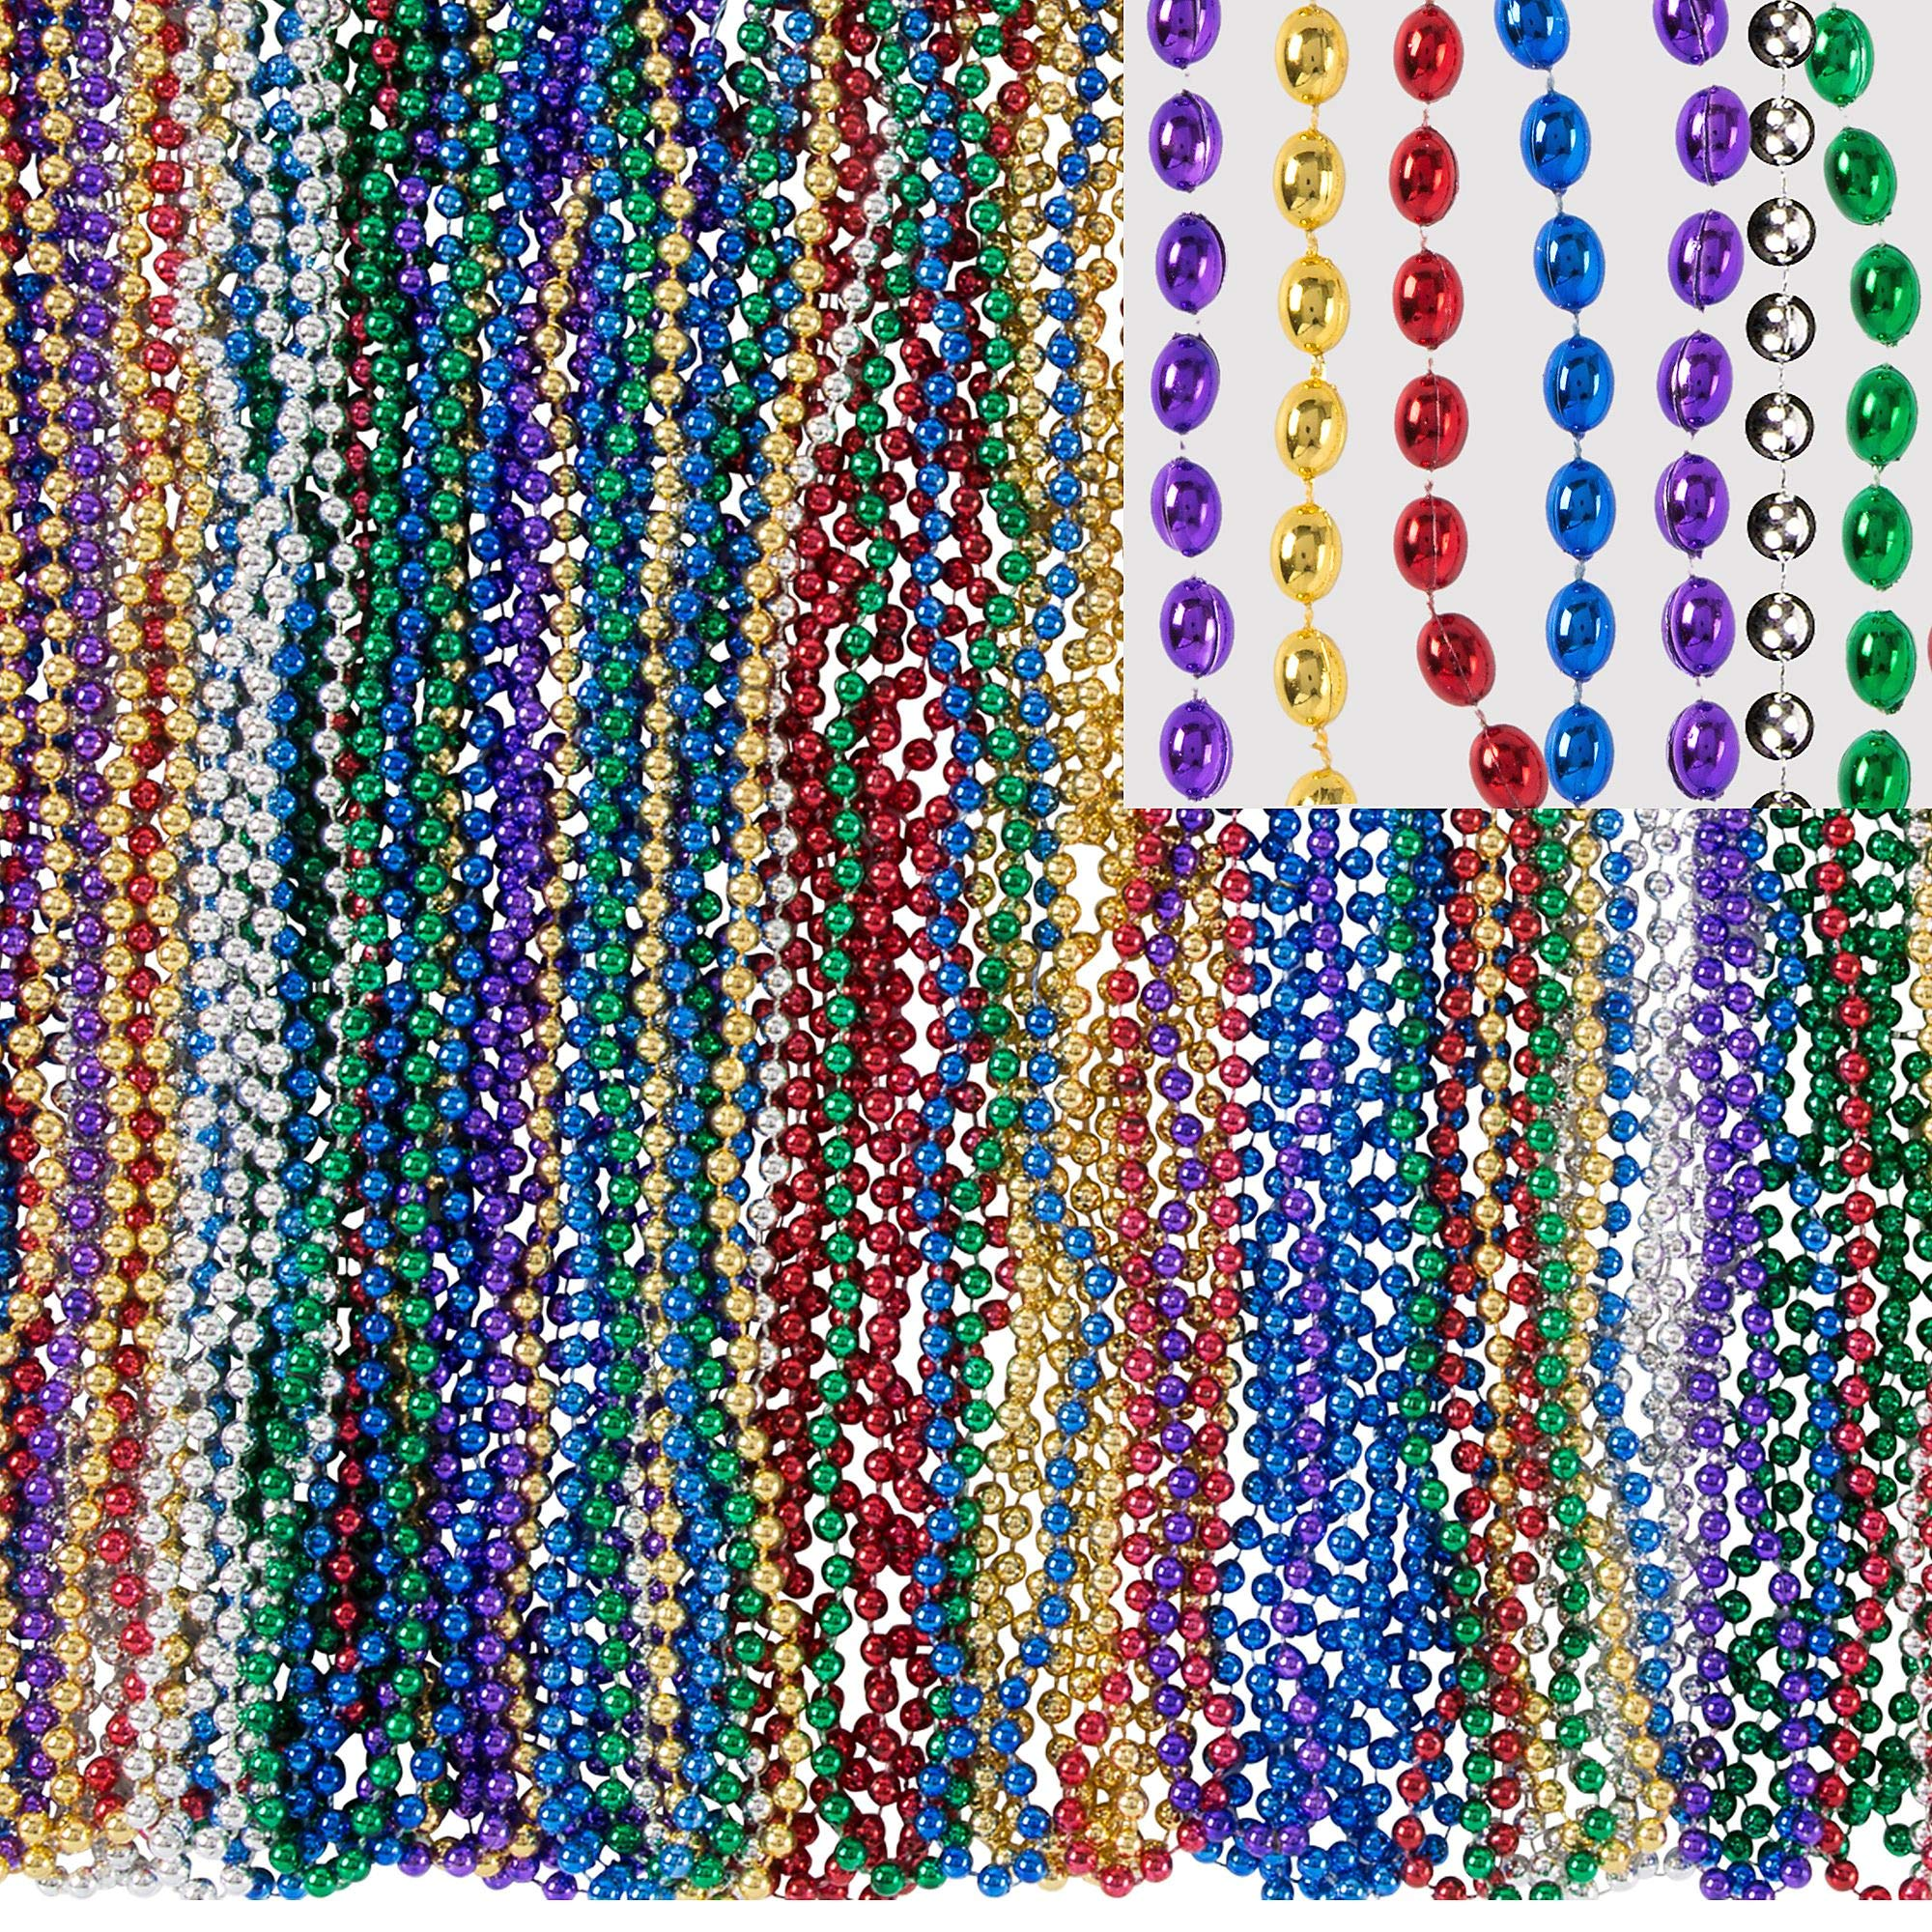 Amscan Mardi Gras Bead Necklaces, Carnival Party Supplies, 6 Assorted Colors, 30'' L, 720 Count by amscan (Image #1)